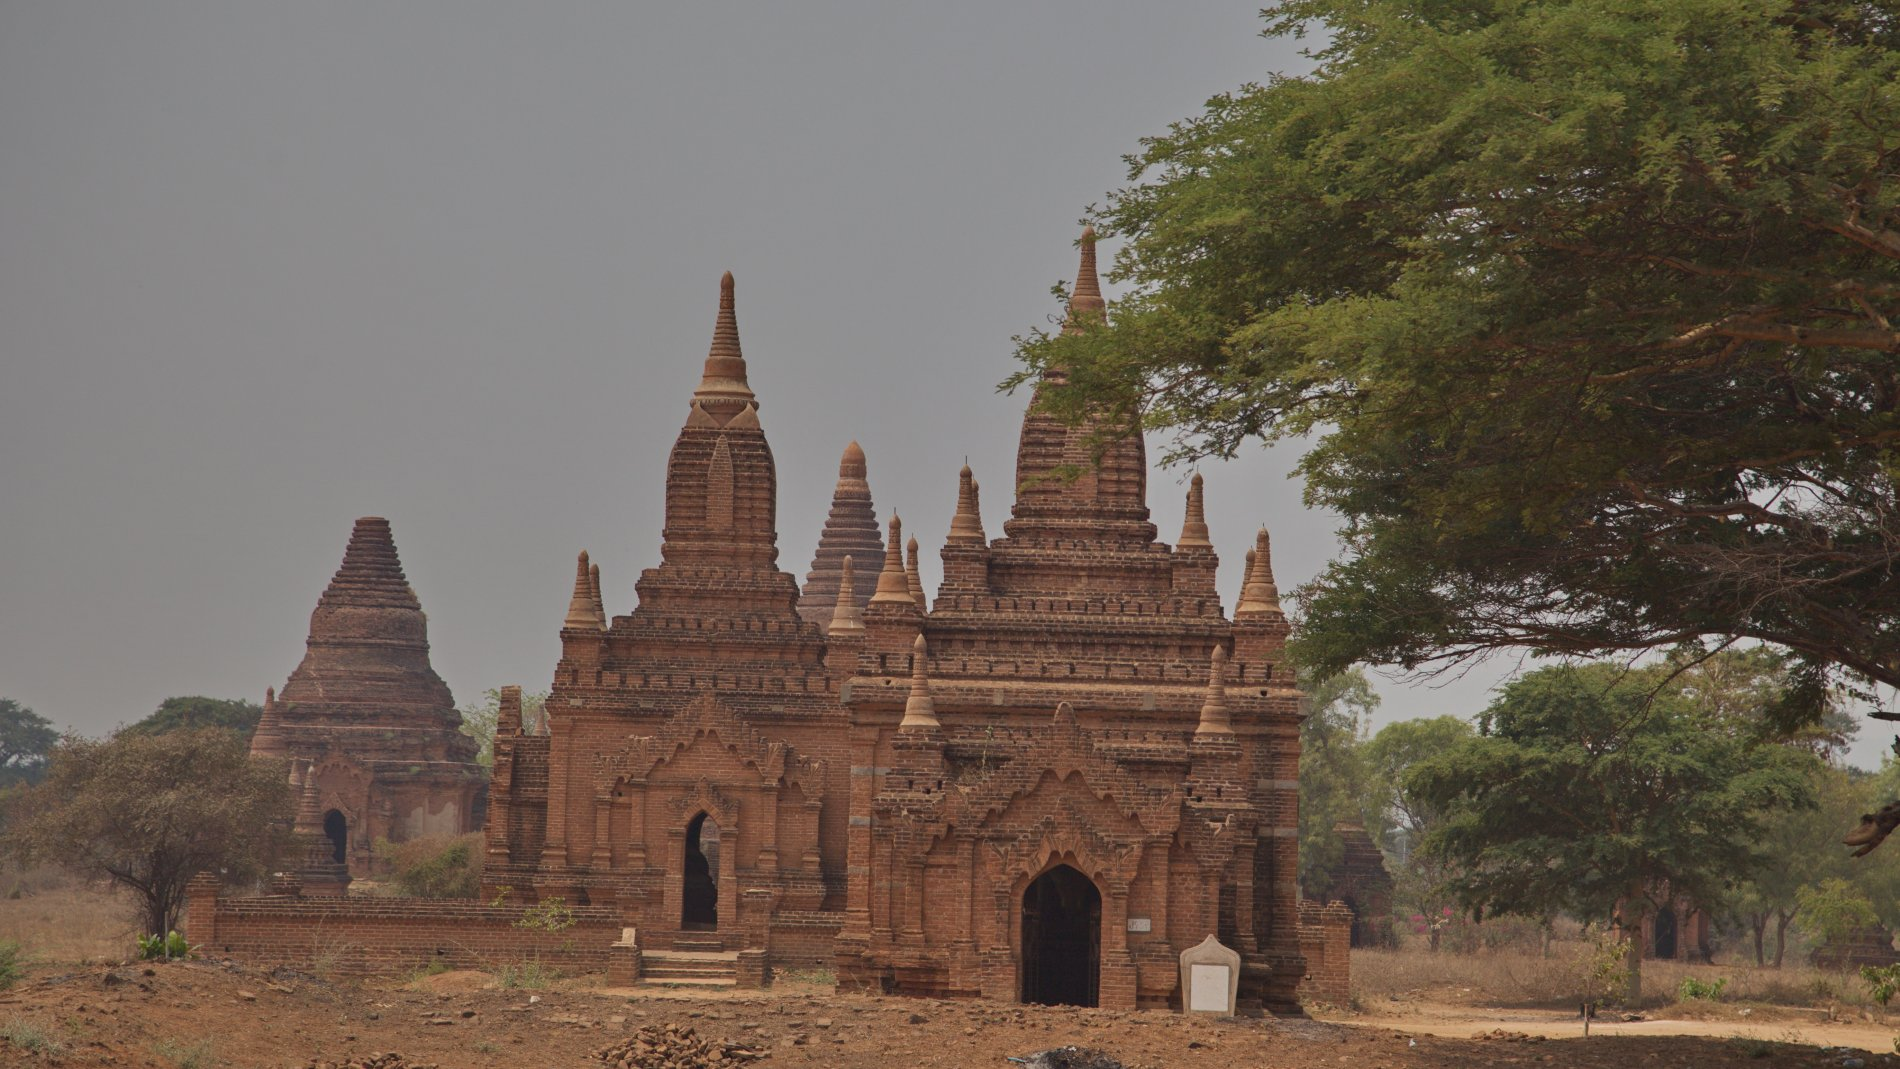 Bagan_149.jpg-commment